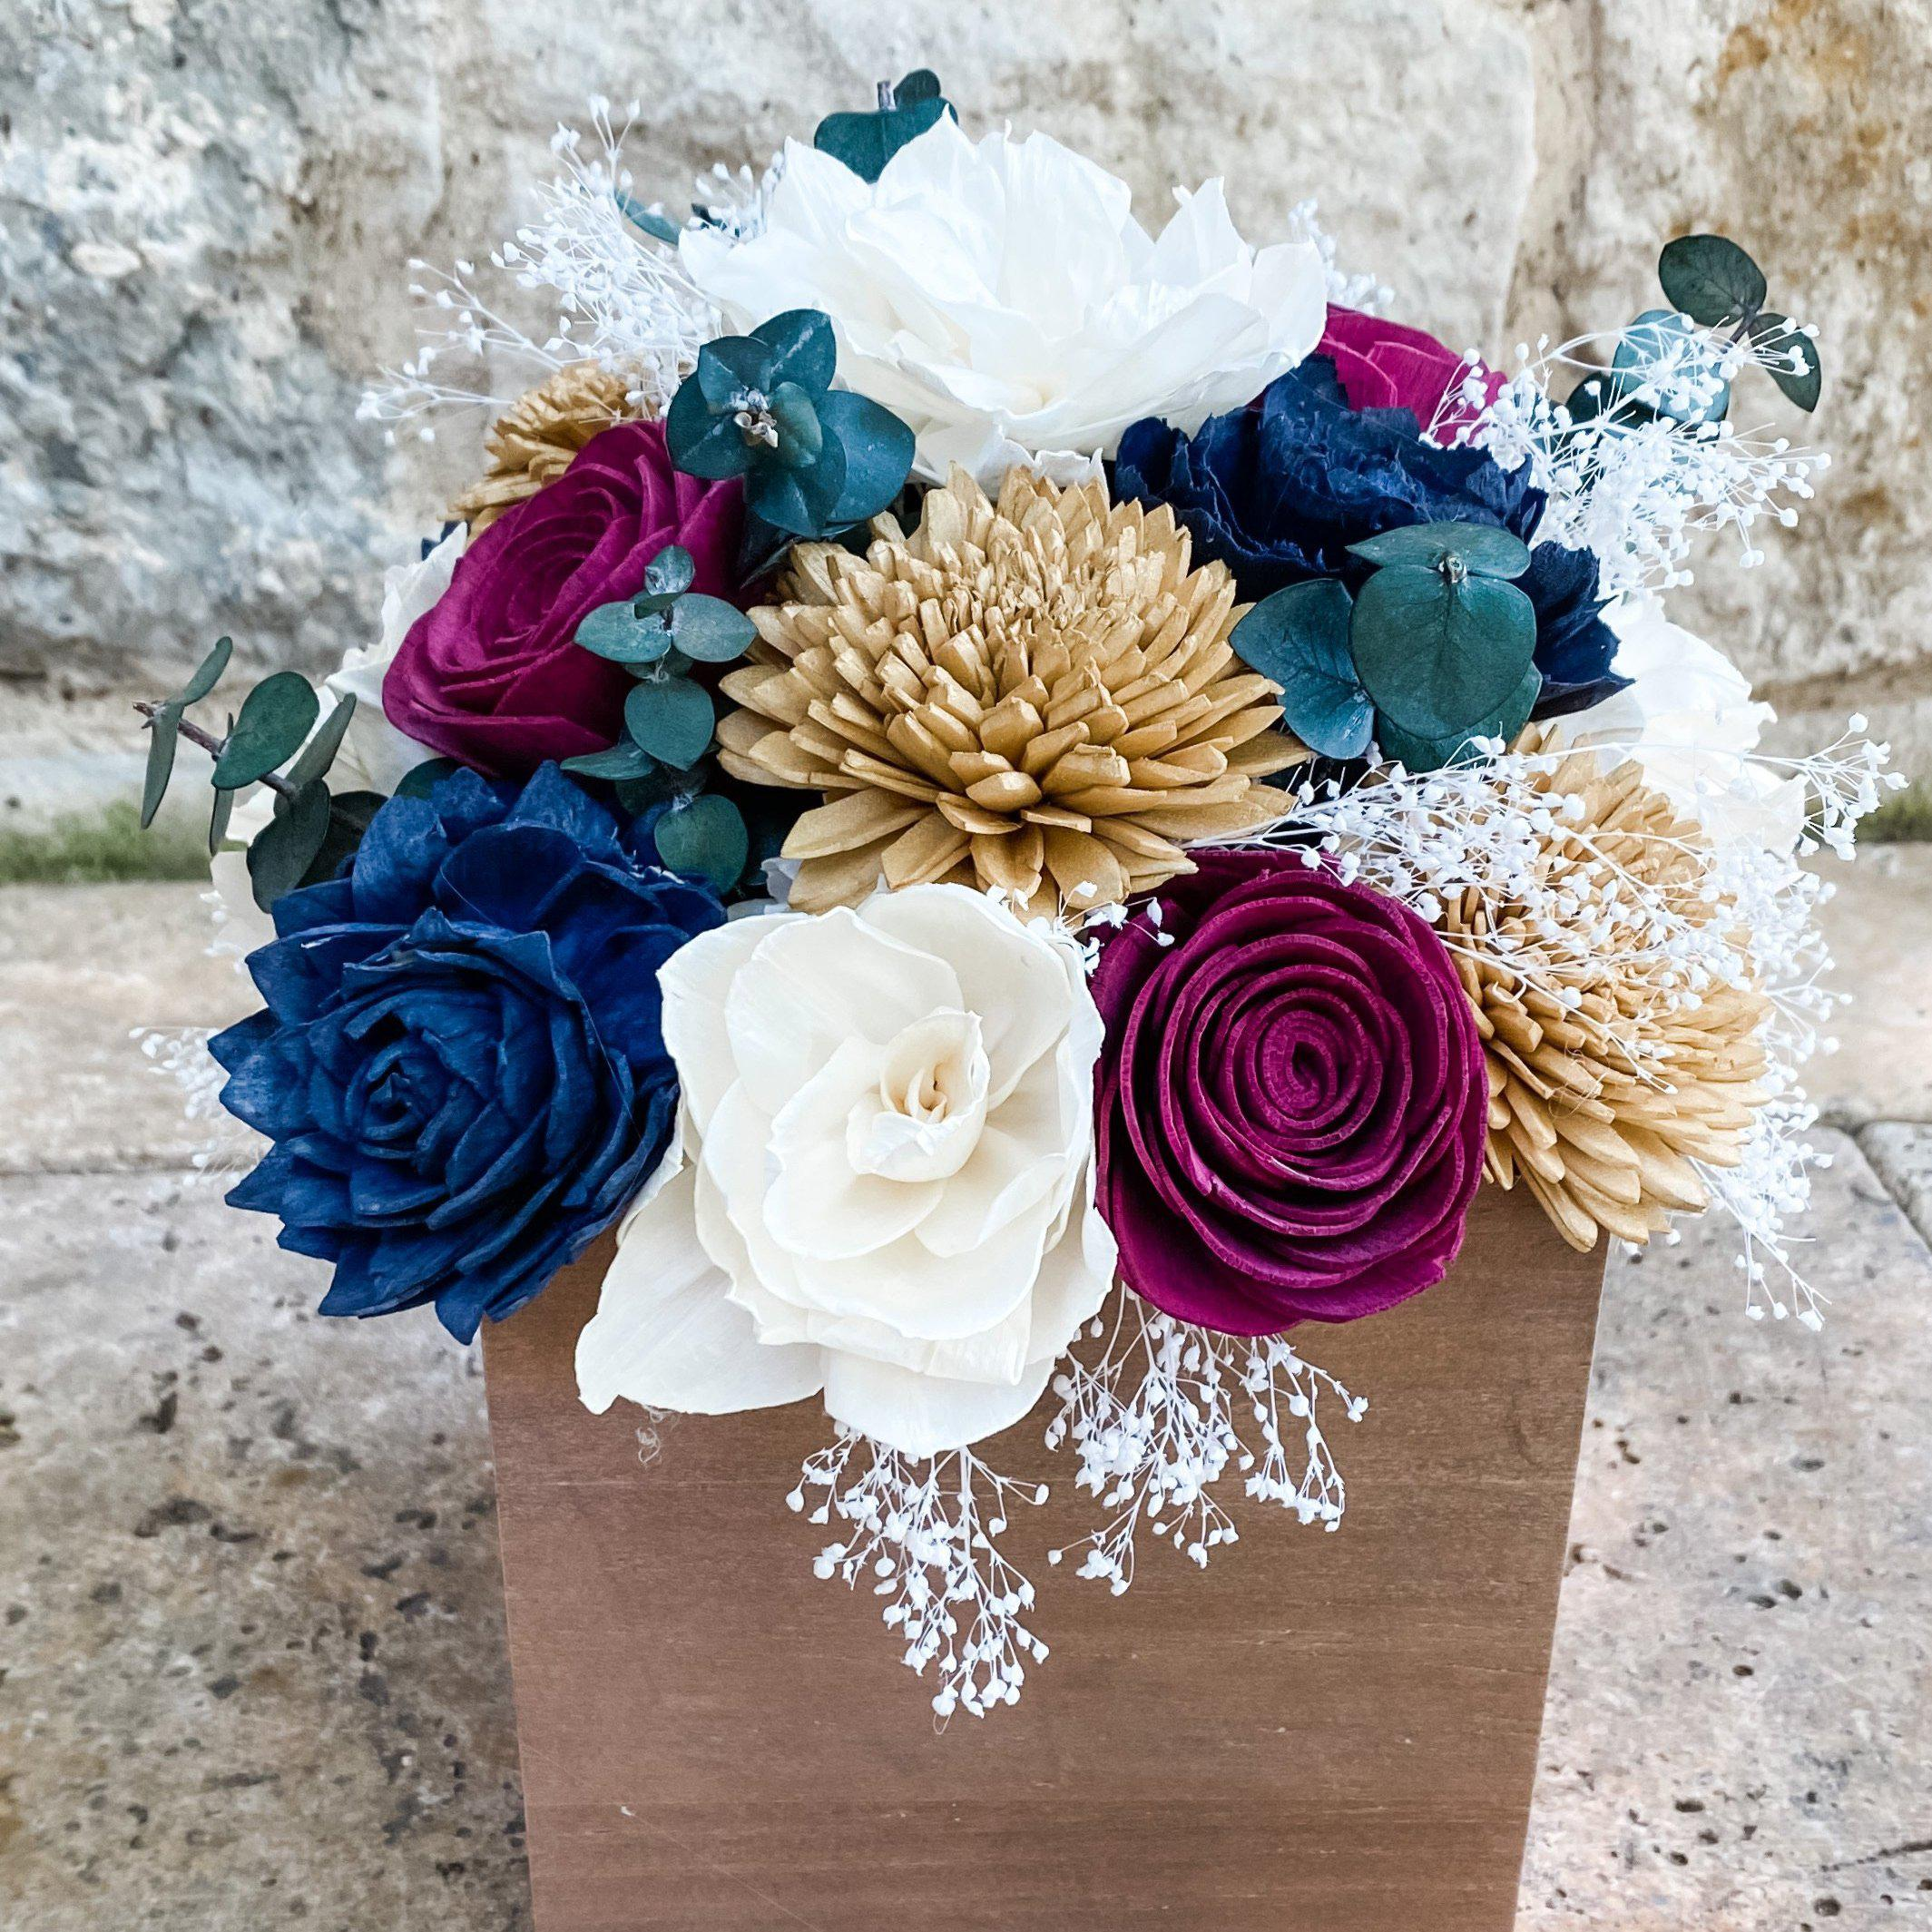 Navy, Gold, Ivory and Burgundy Centerpiece - Wood flowers Bouquets, Boutonniere, wedding Floral Decor & Accessories - Papiro Wood Flower Designs